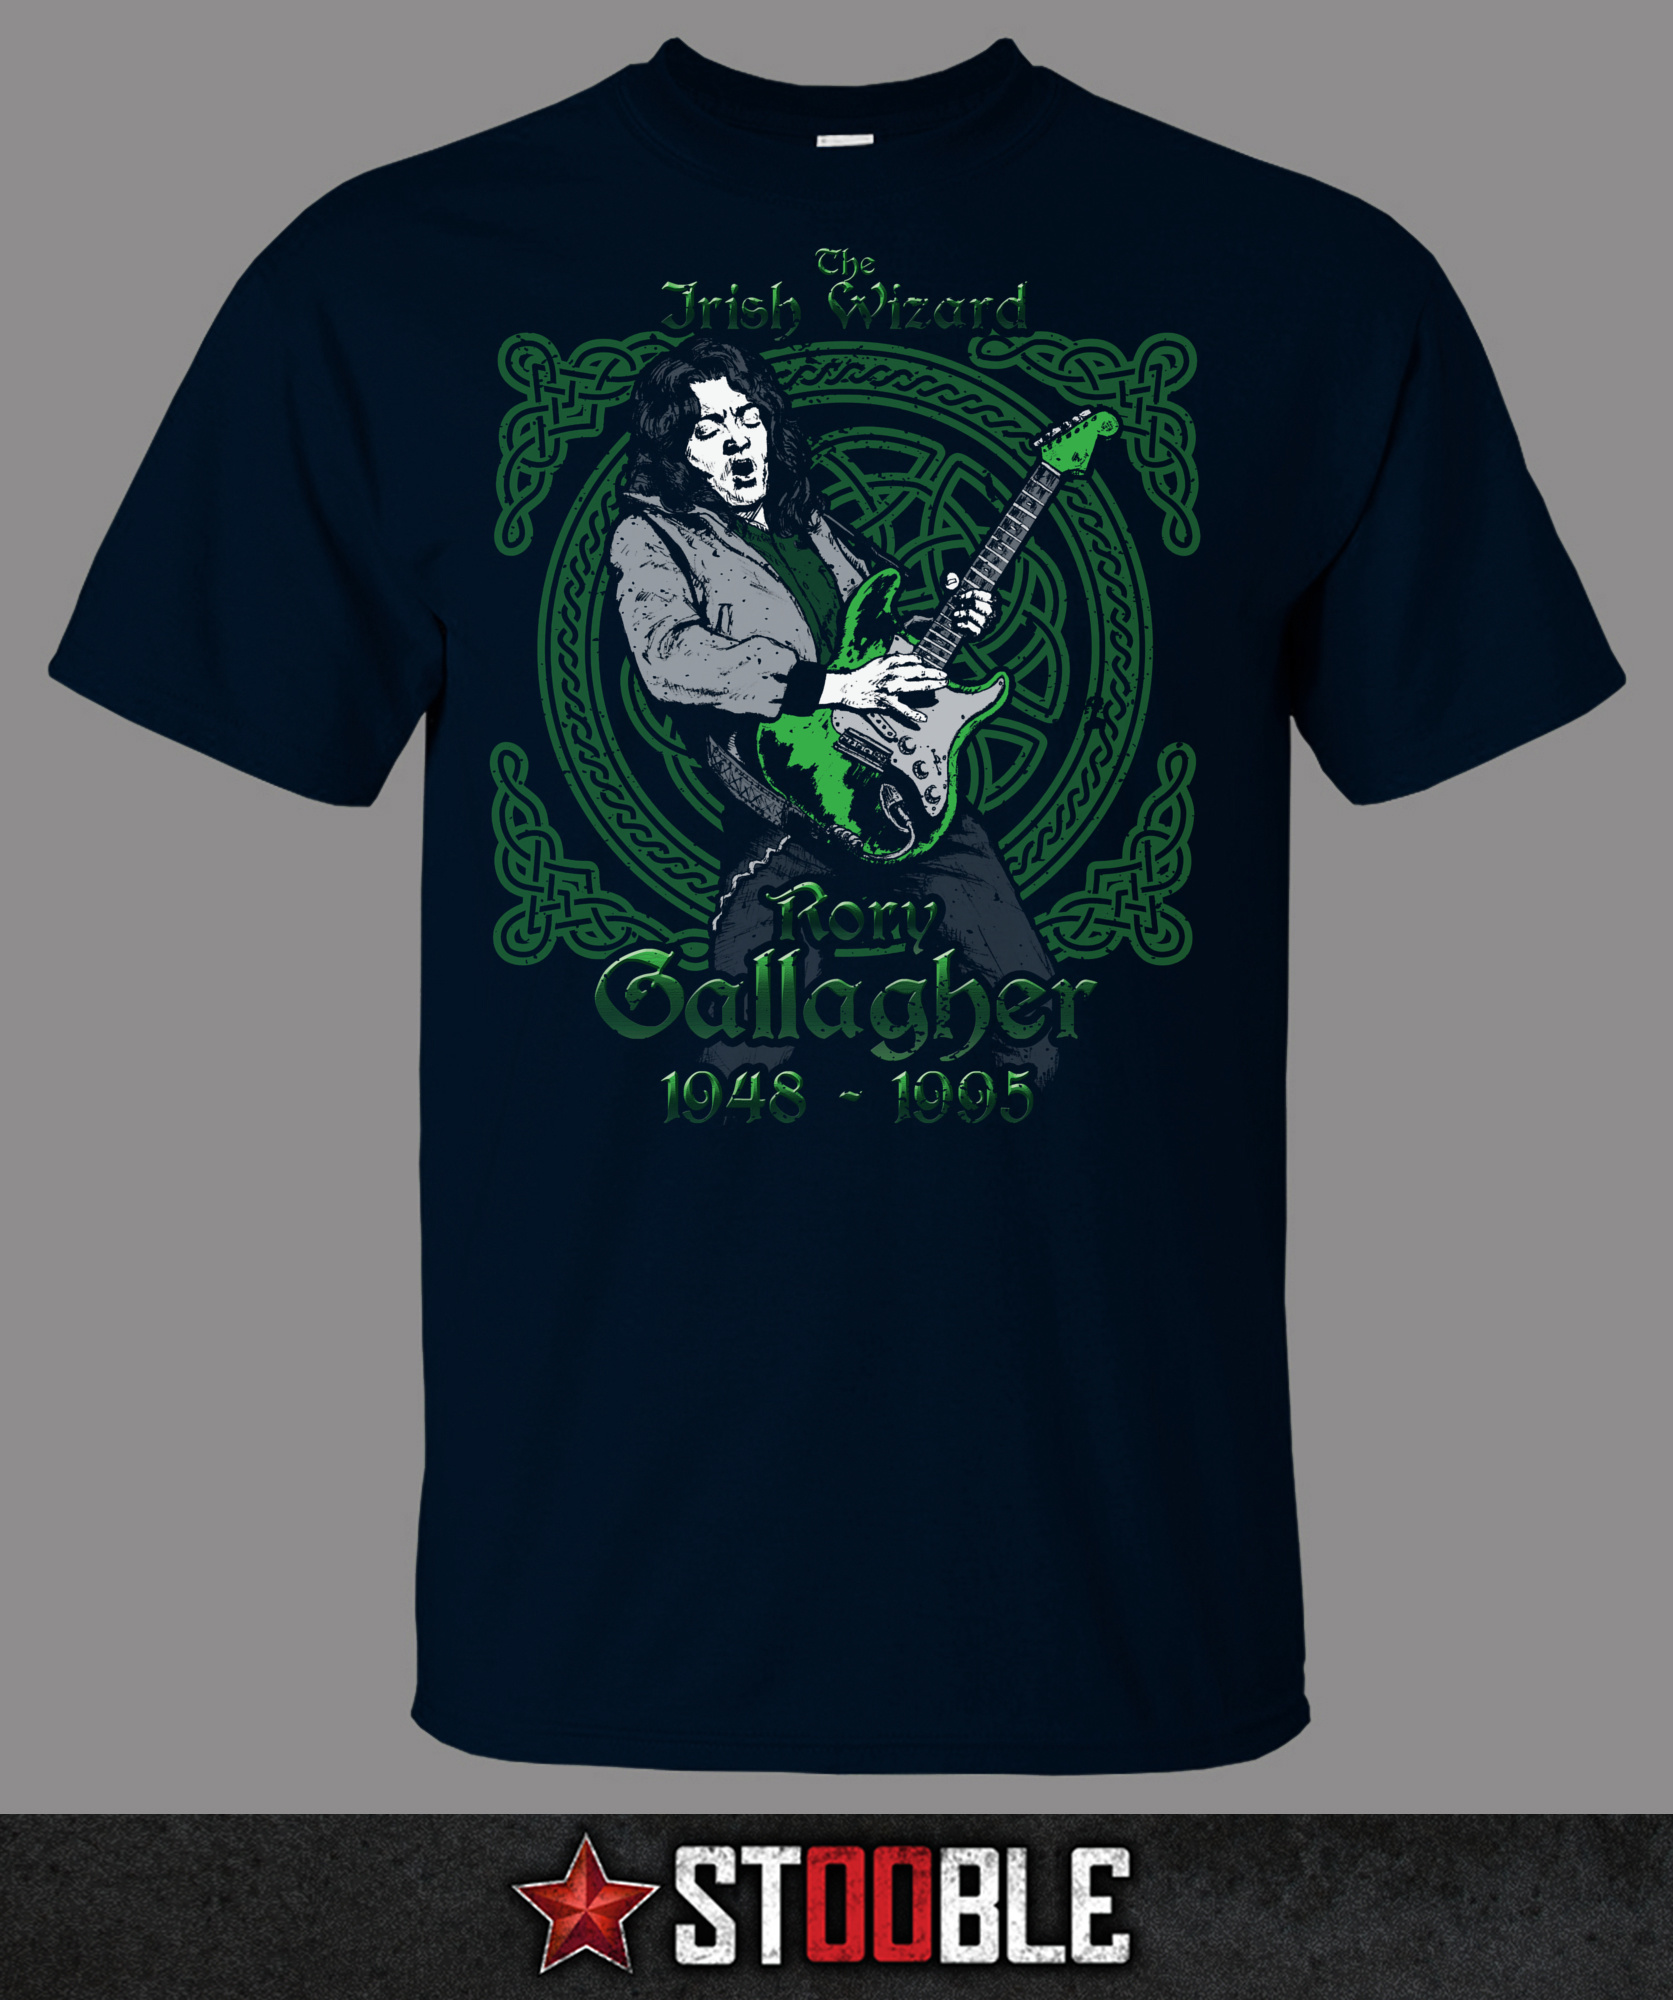 Rory gallagher irish wizard t shirt direct from stockist for Wizard t shirt printing